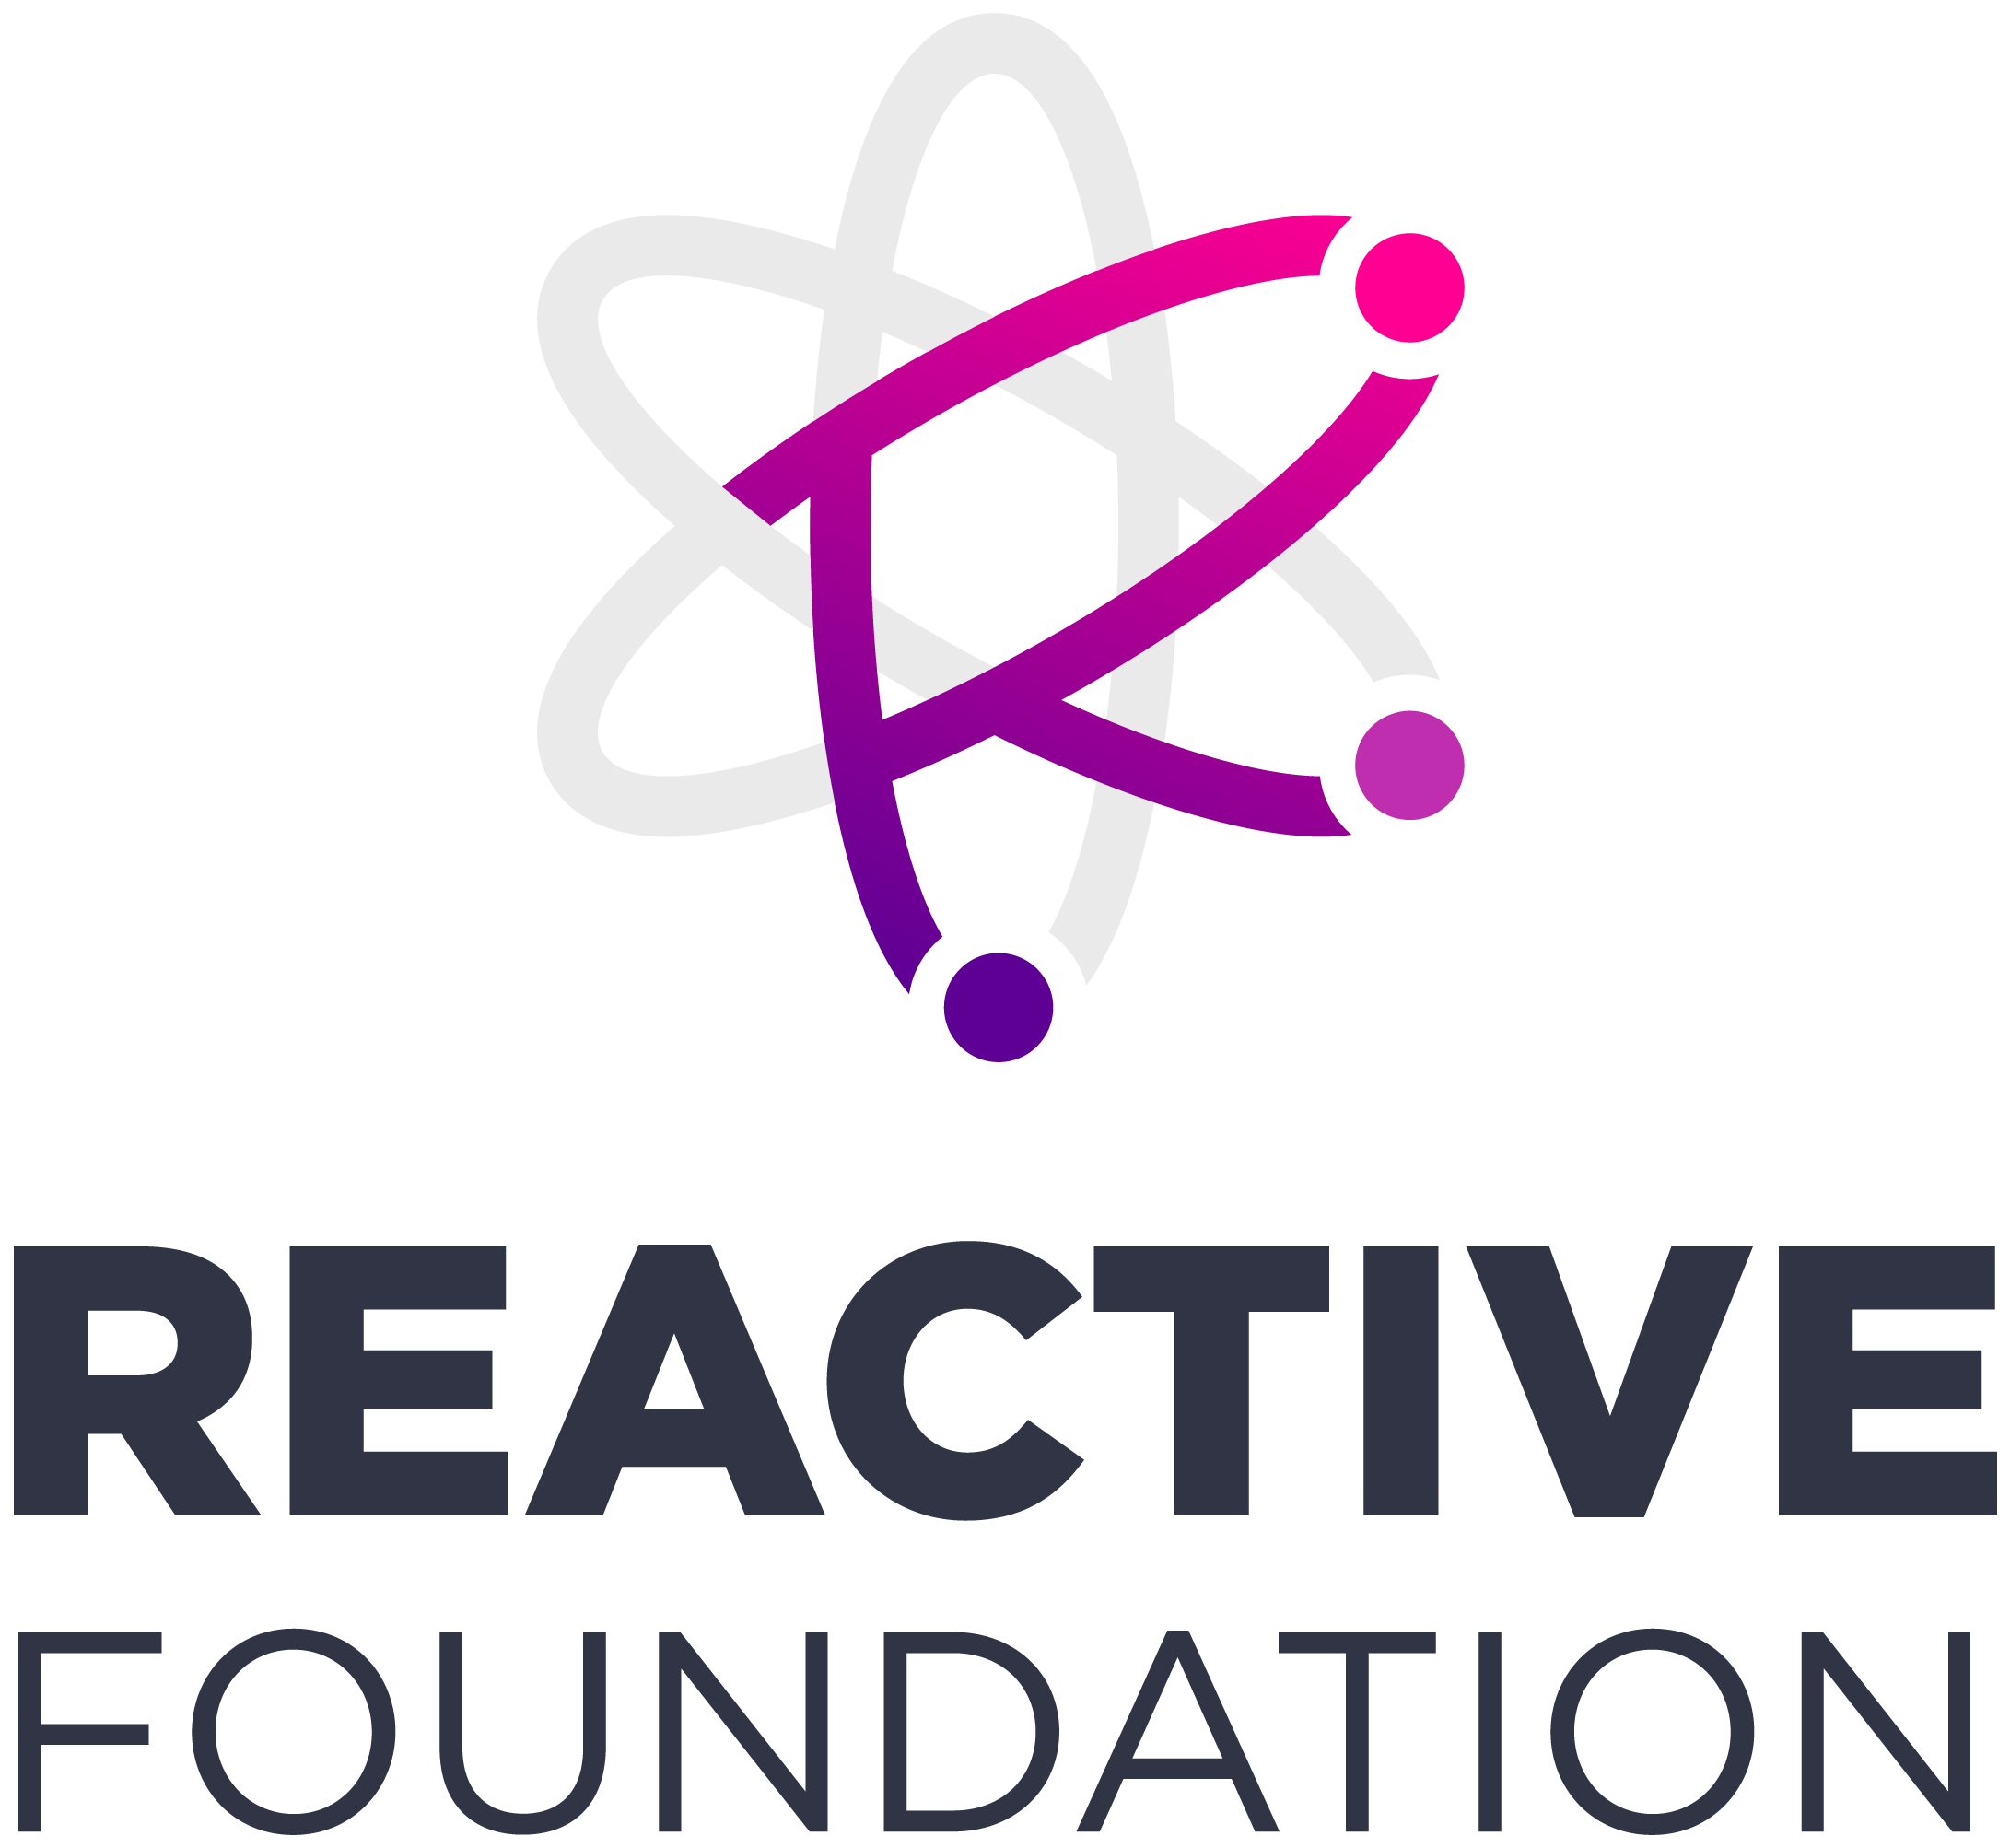 Reactive Foundation tackles next phase of software architecture